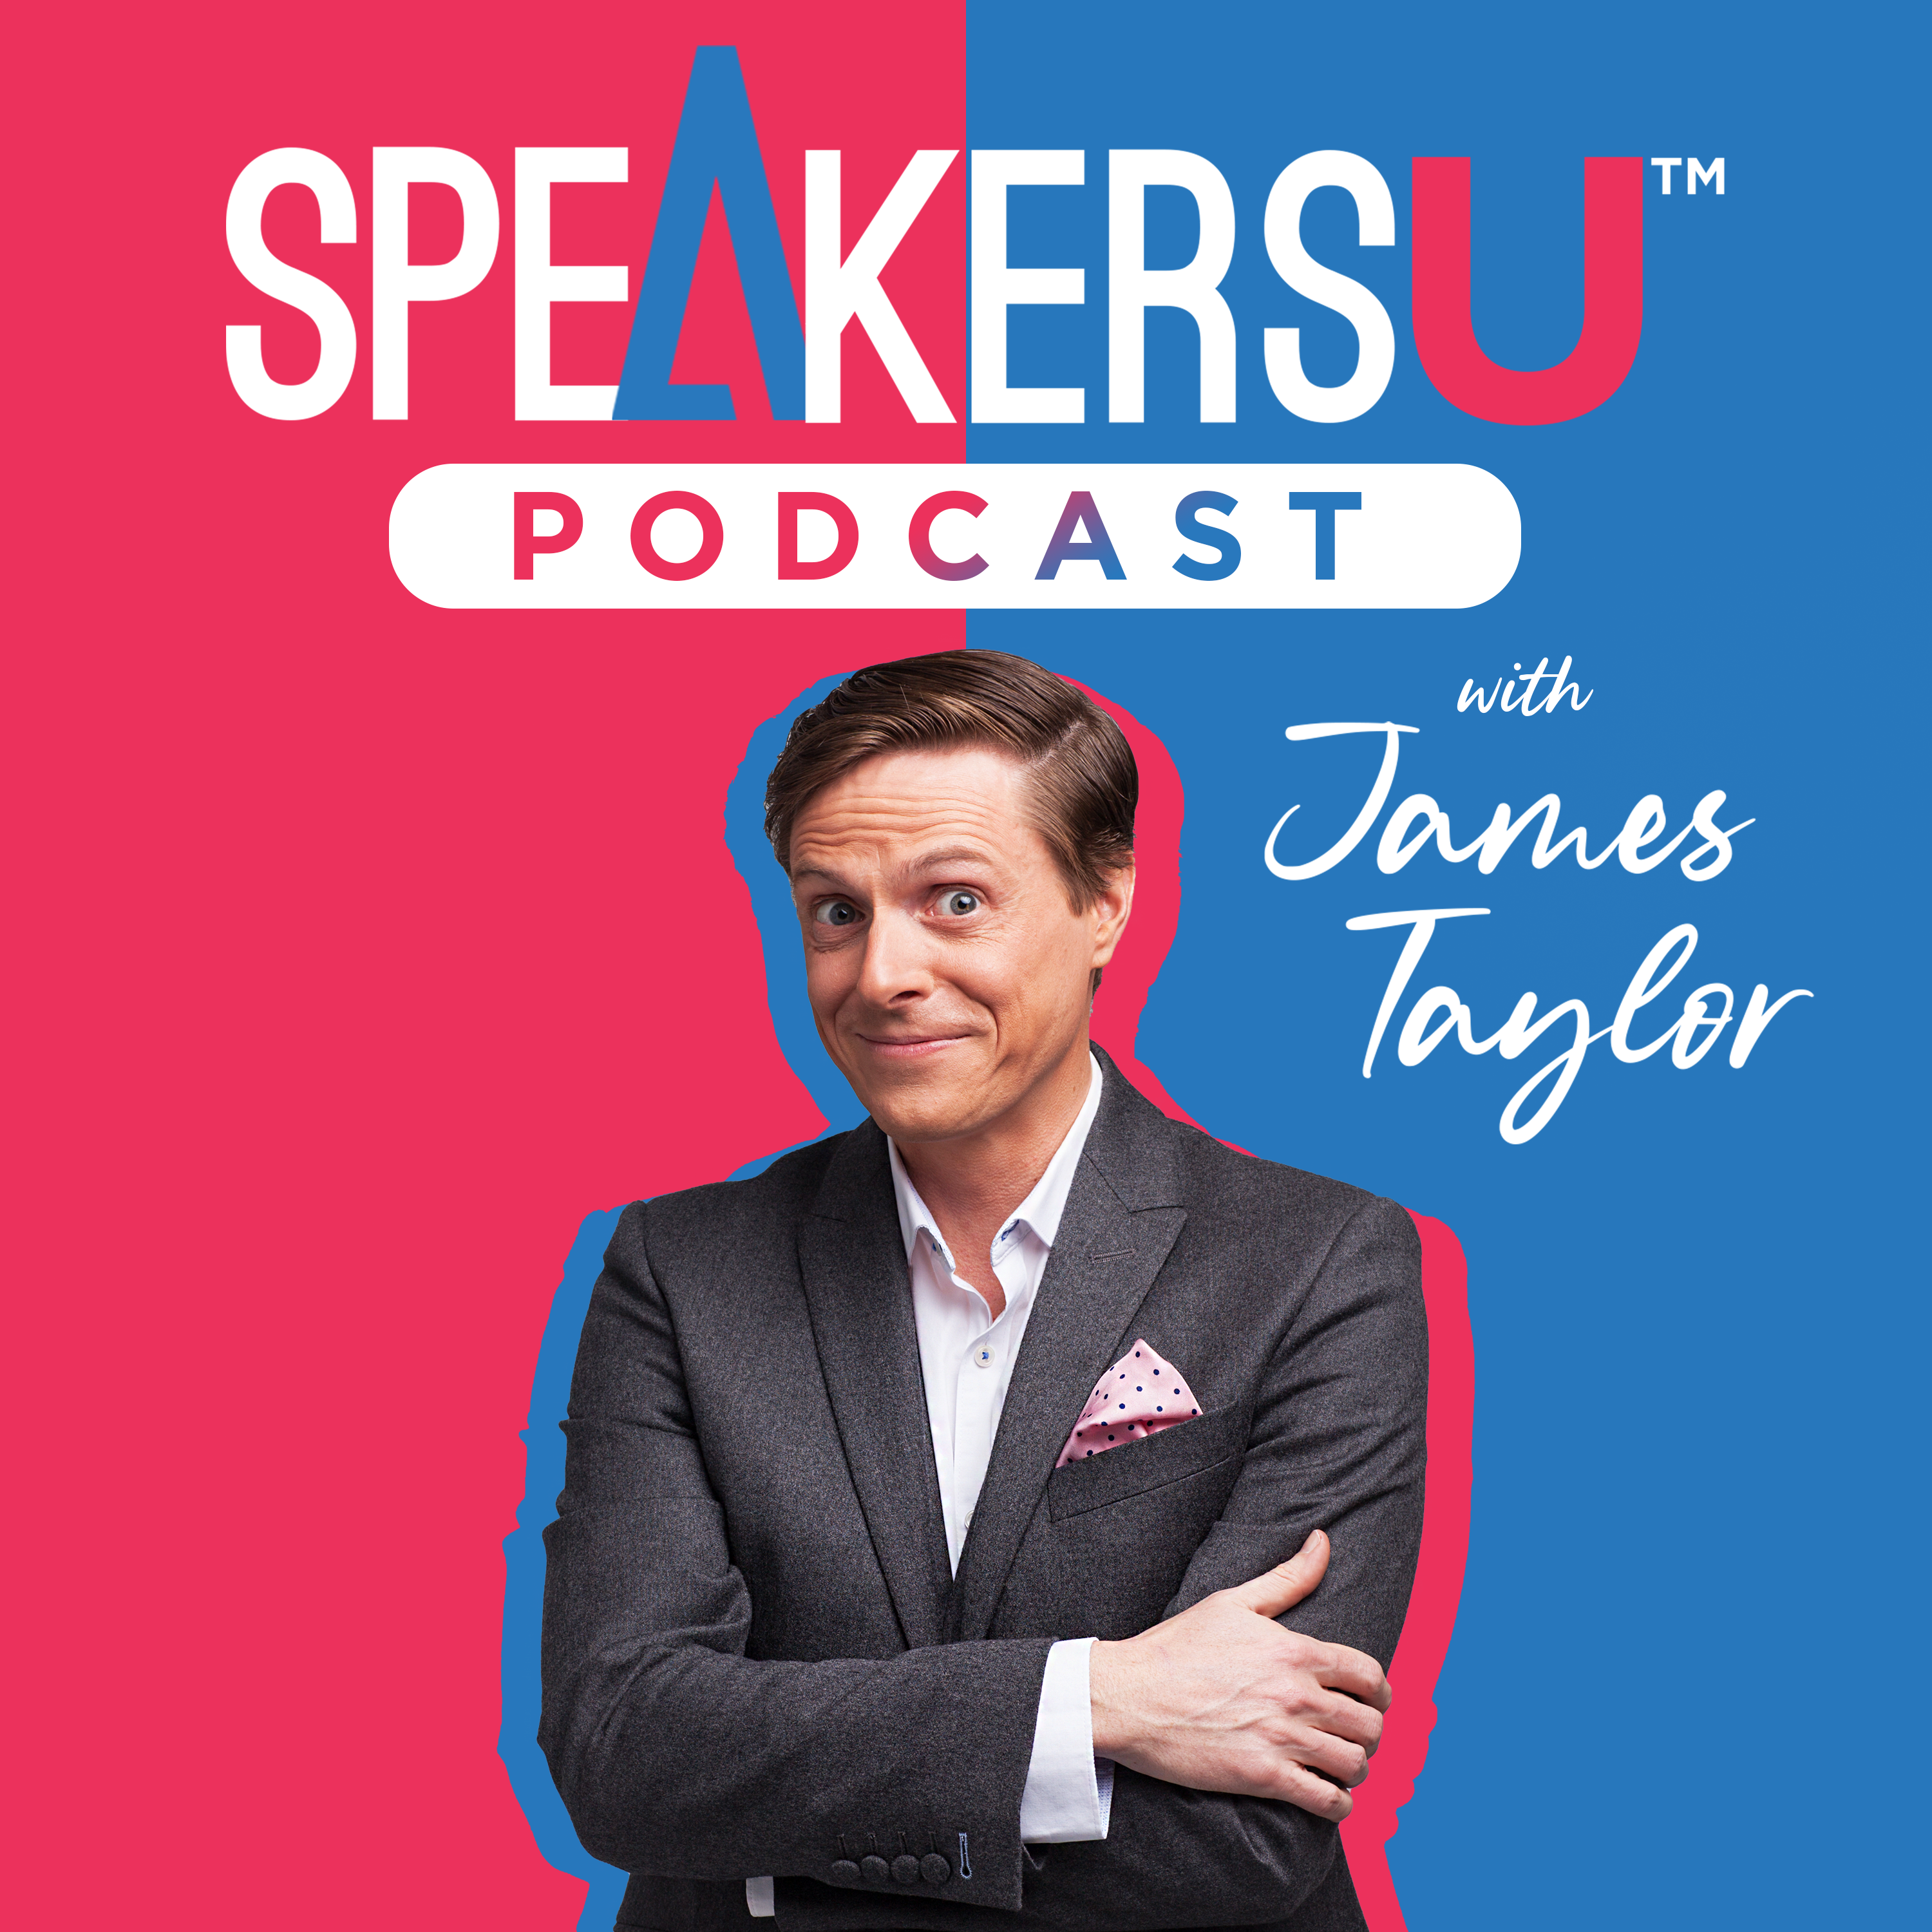 SpeakersU Podcast with James Taylor show art